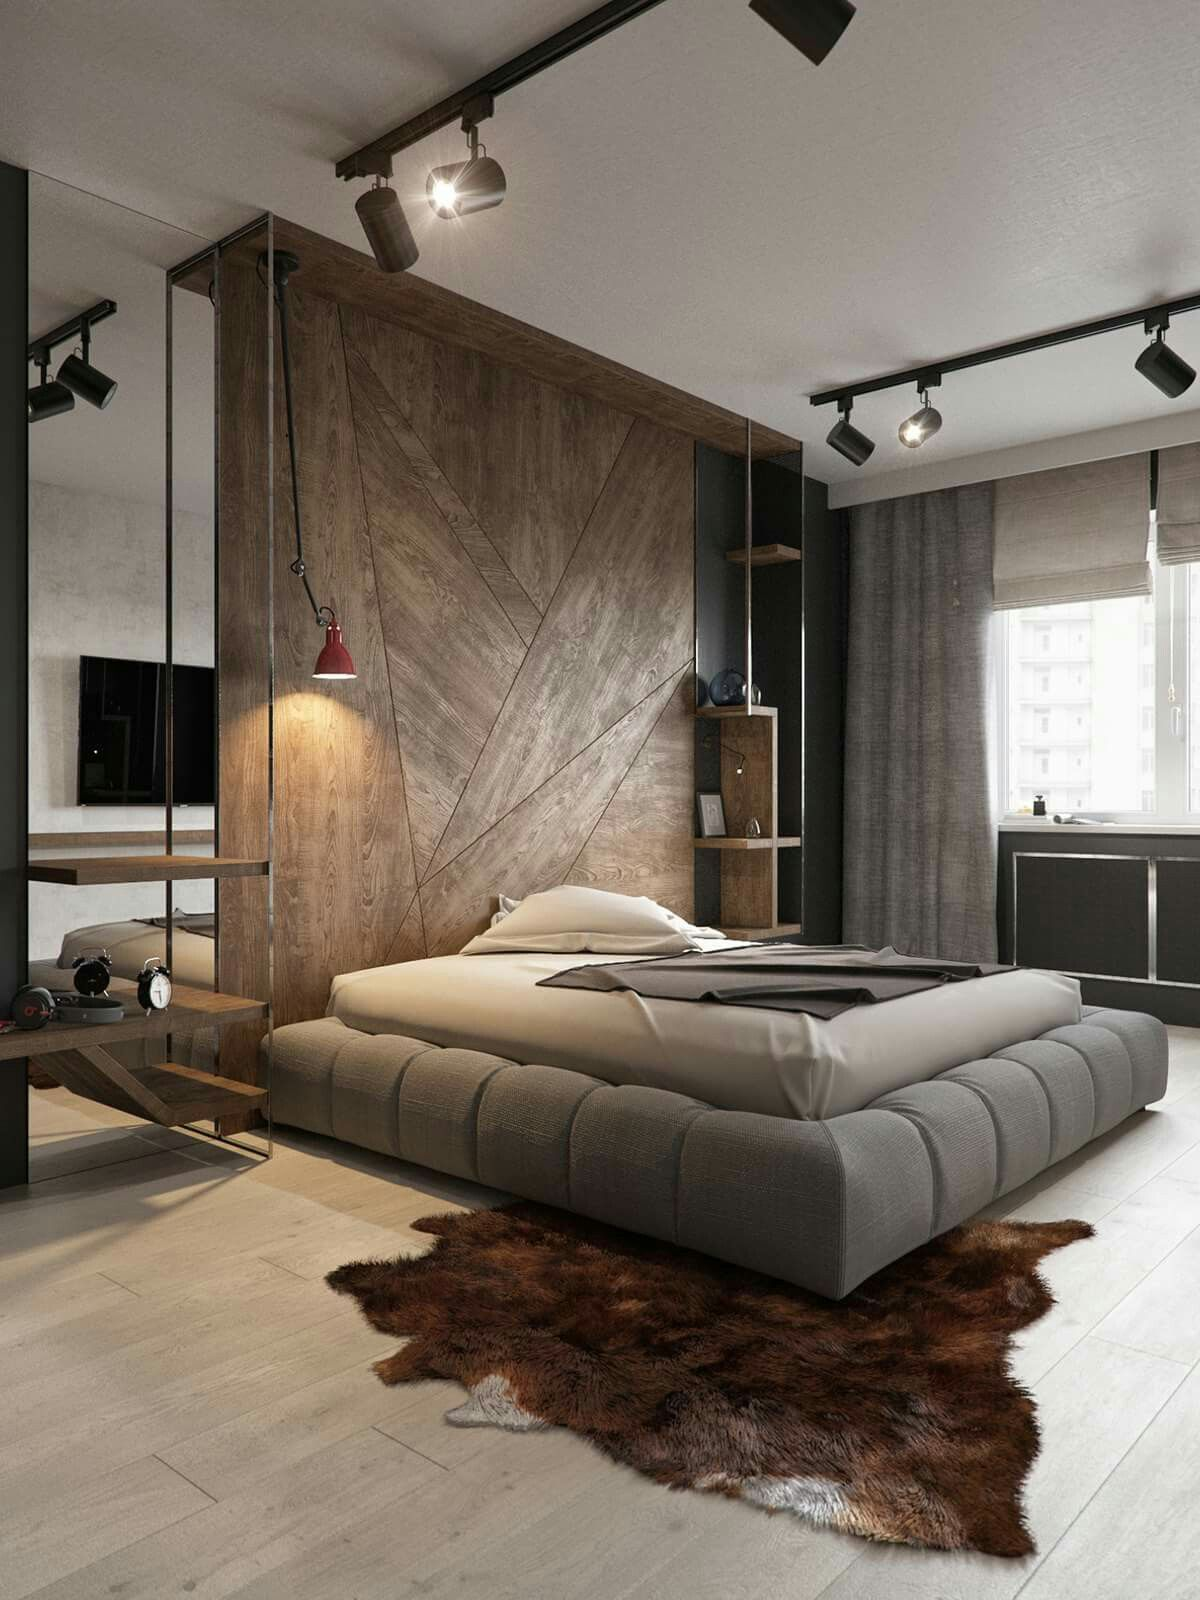 Genial The Headboard Or Room Partition In This Loft Is Quite Impressive.